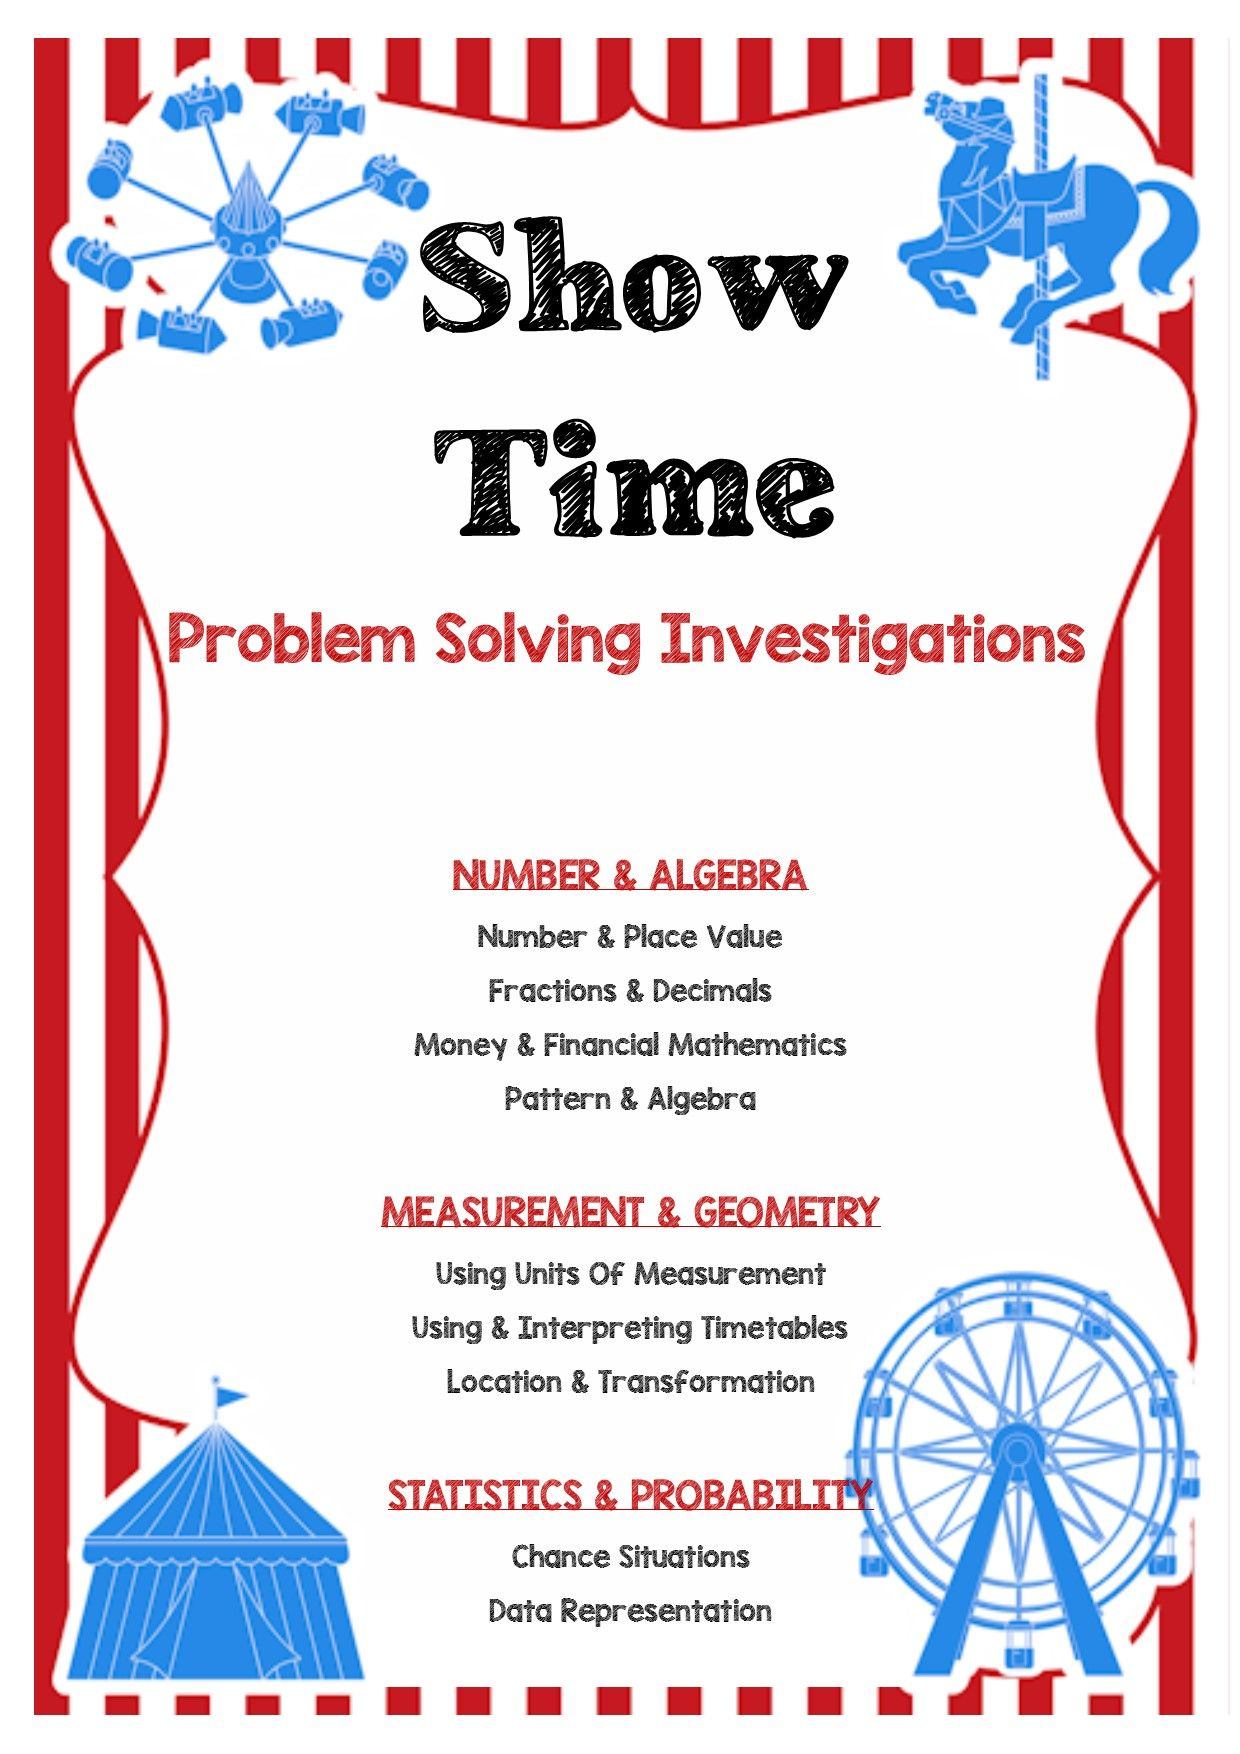 Show Time Carnival Problem Solving Investigations Number